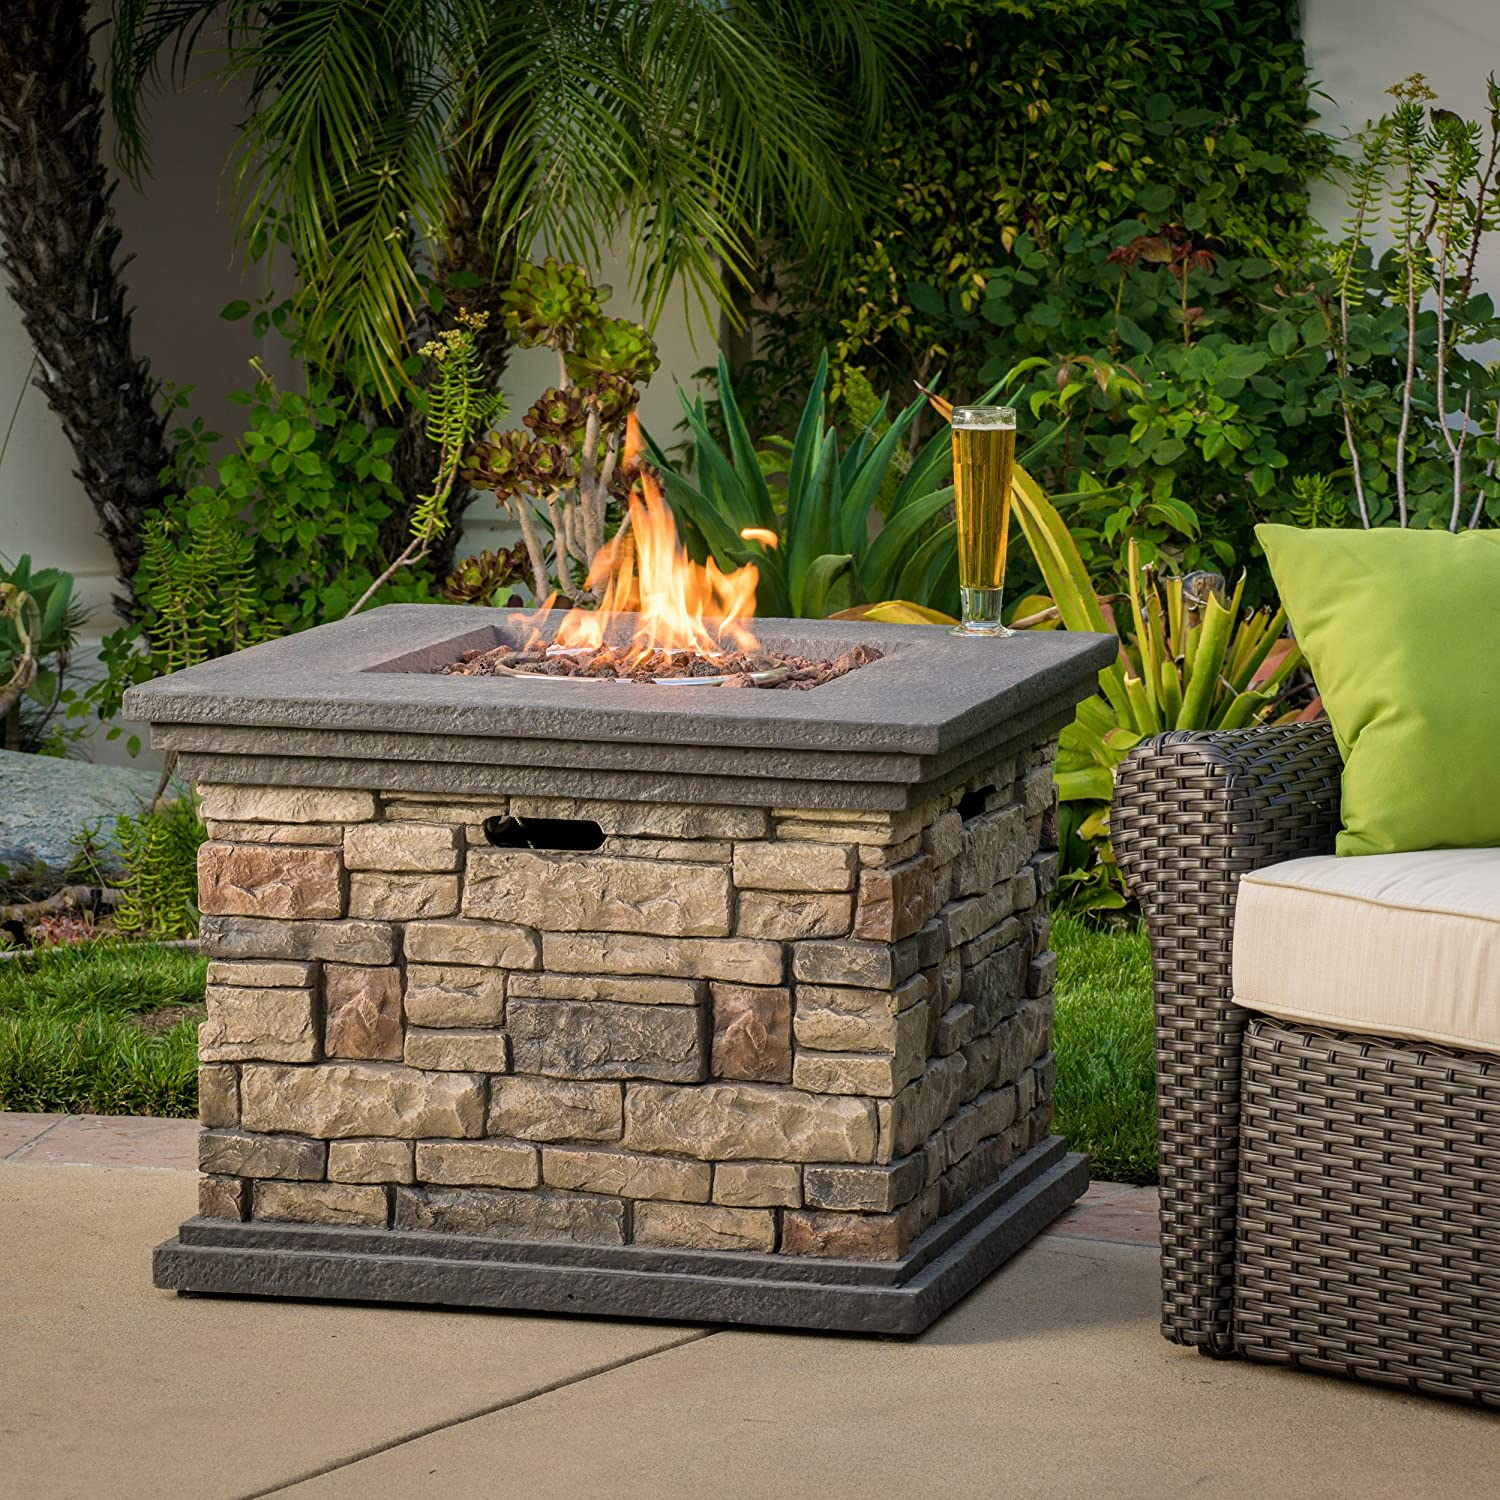 amazoncom crawford outdoor square liquid propane fire pit with lava rocks patio lawn u0026 garden - Fire Tables